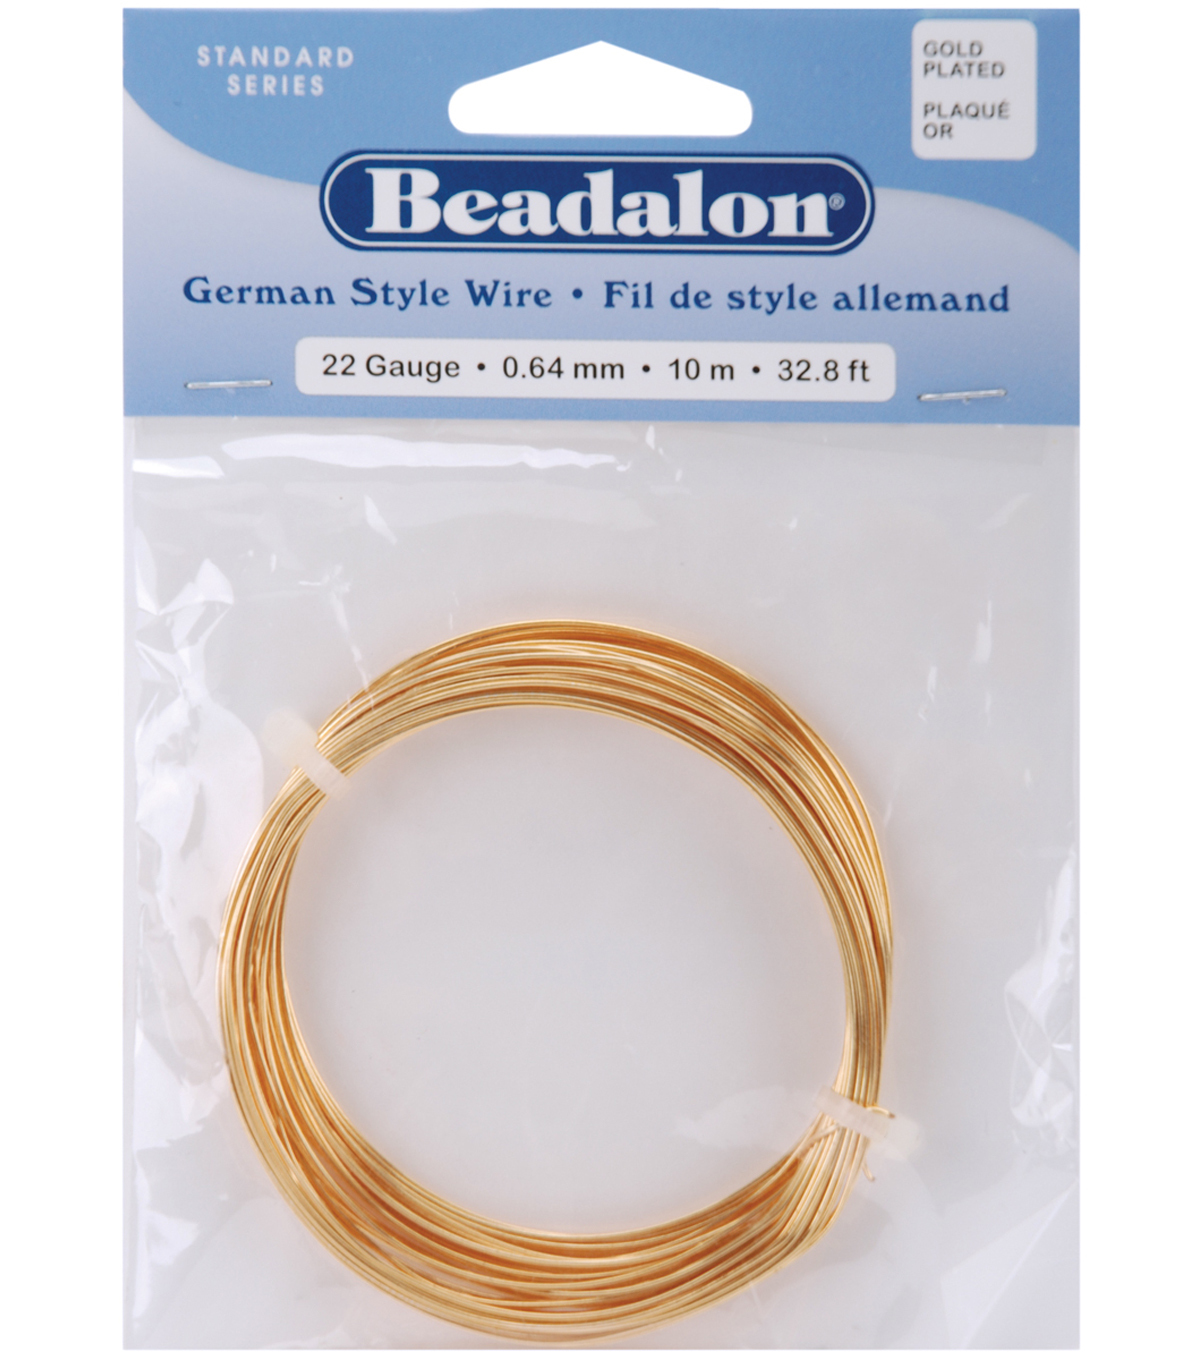 Beadalon German Style Round Wire 22 Gauge 32.8 Feet/Pkg-Gold